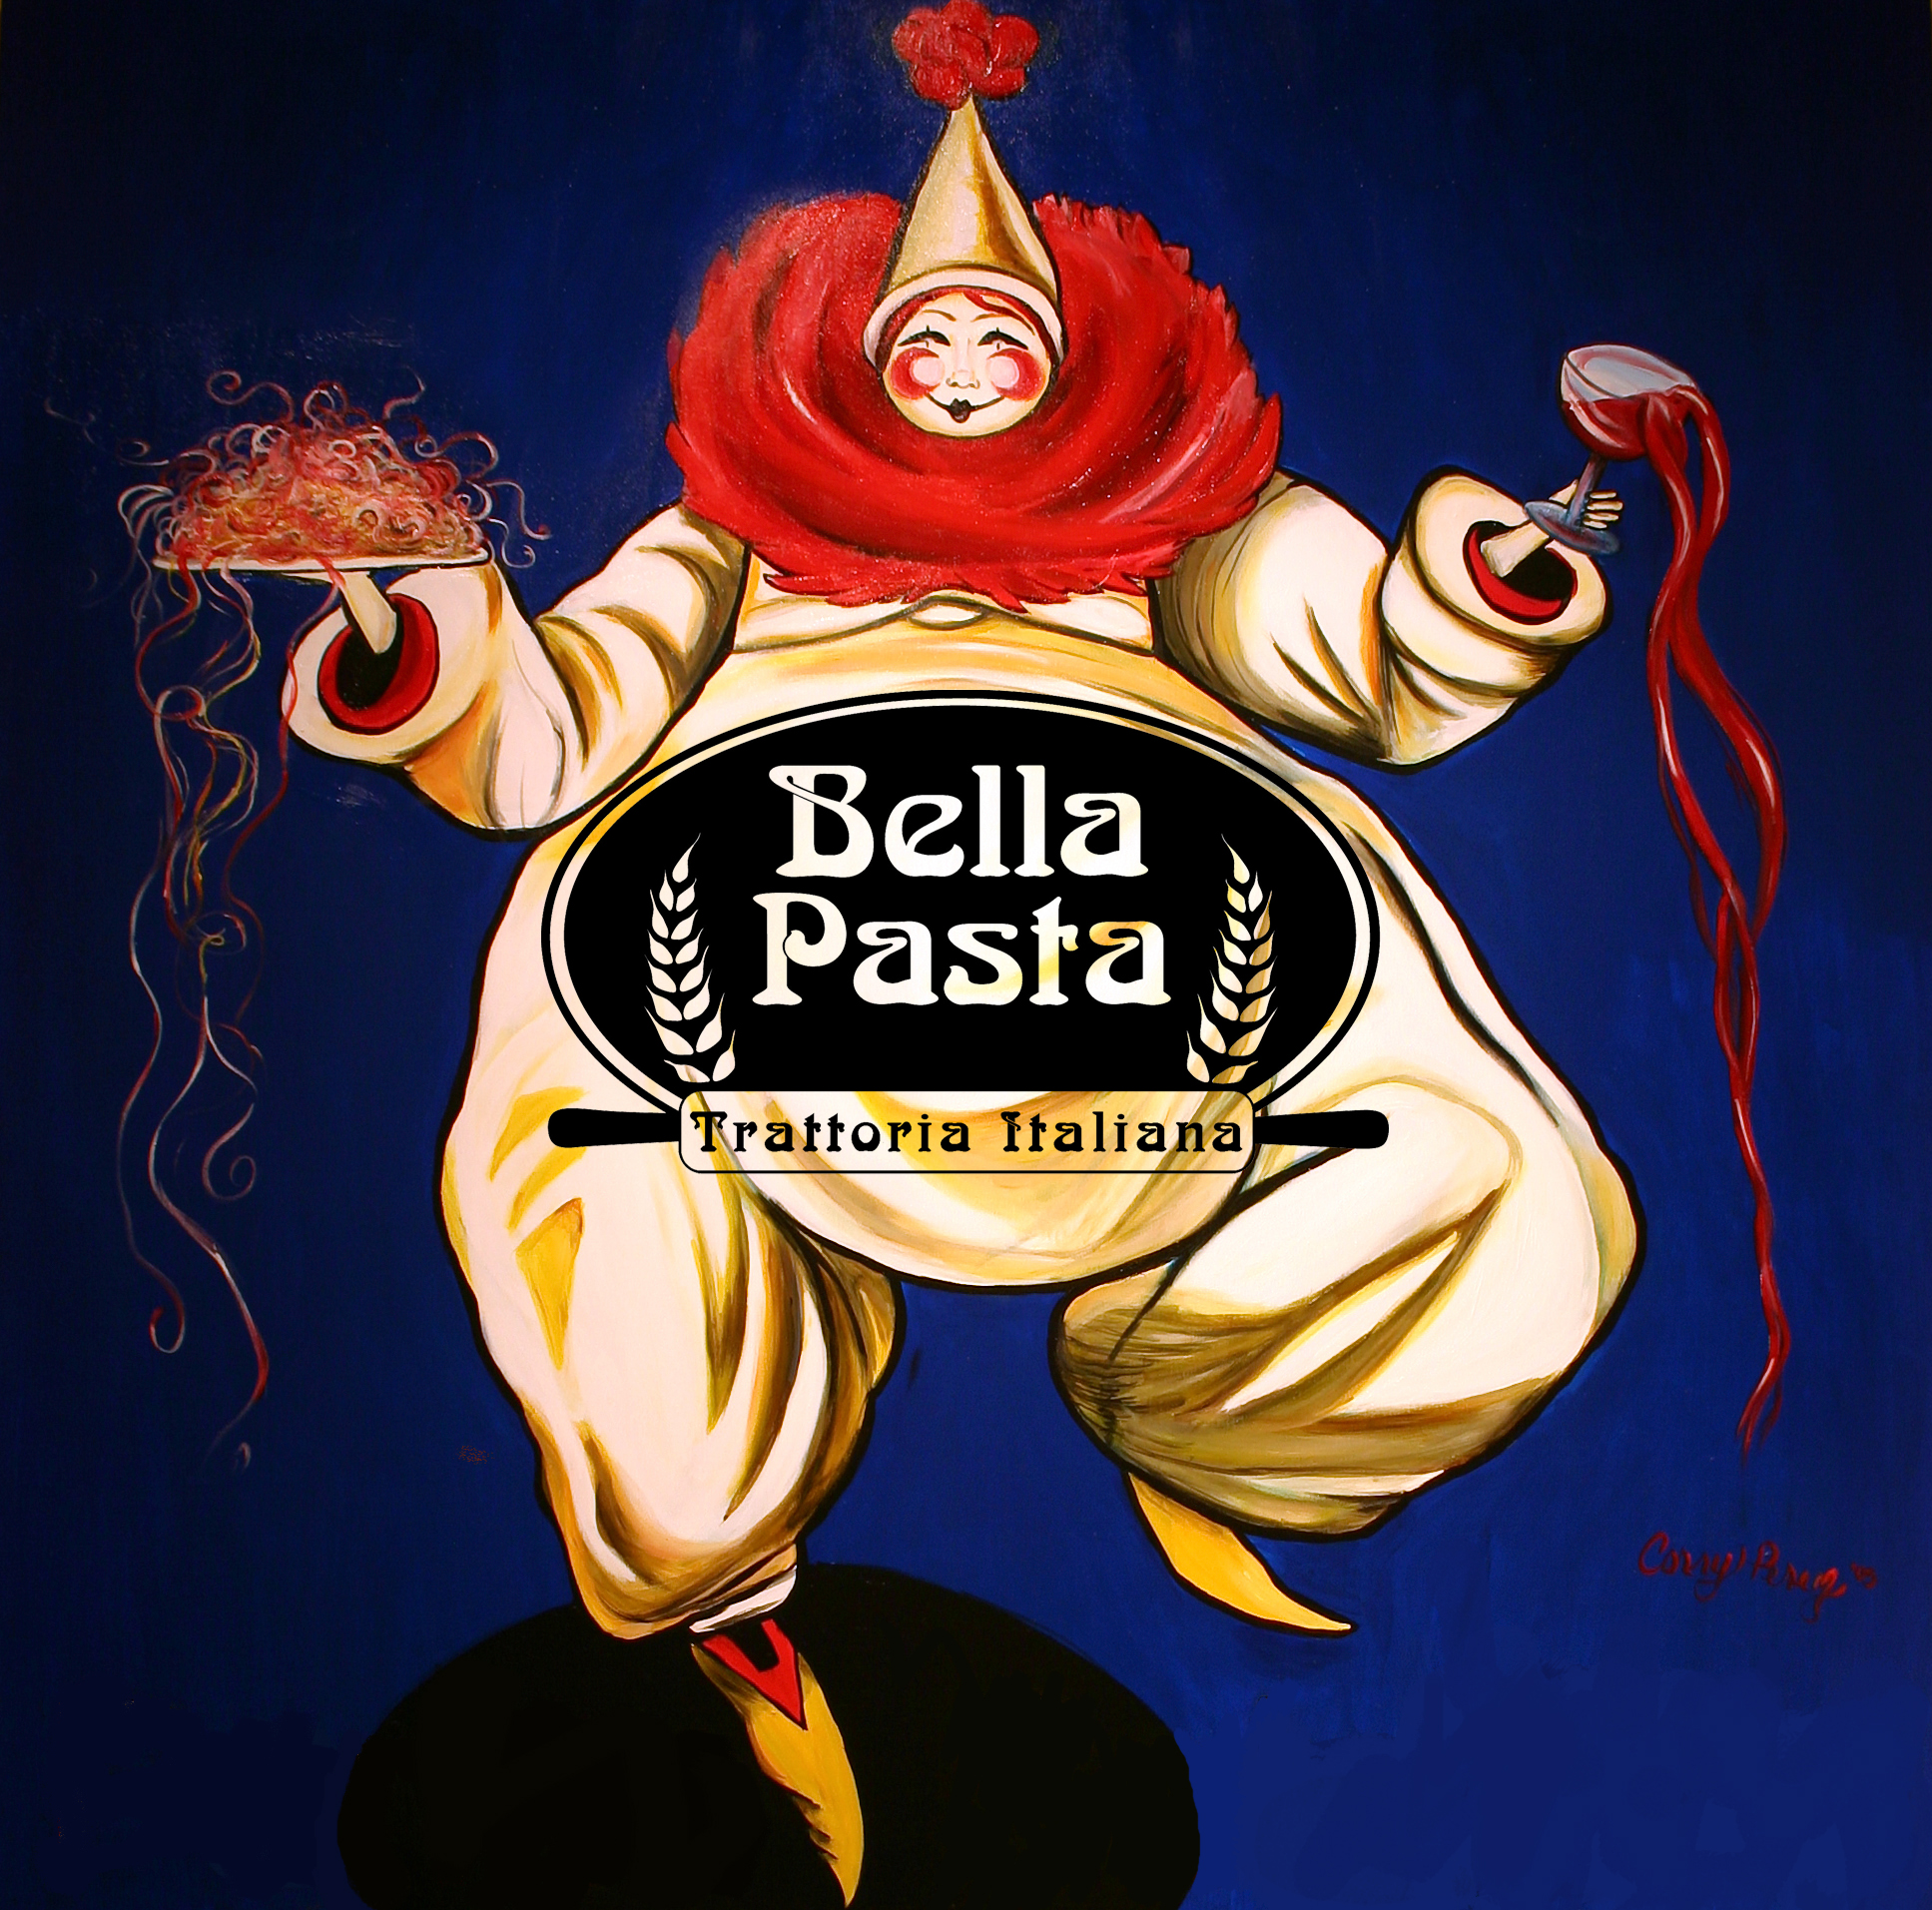 Bella Pasta Clown 2016